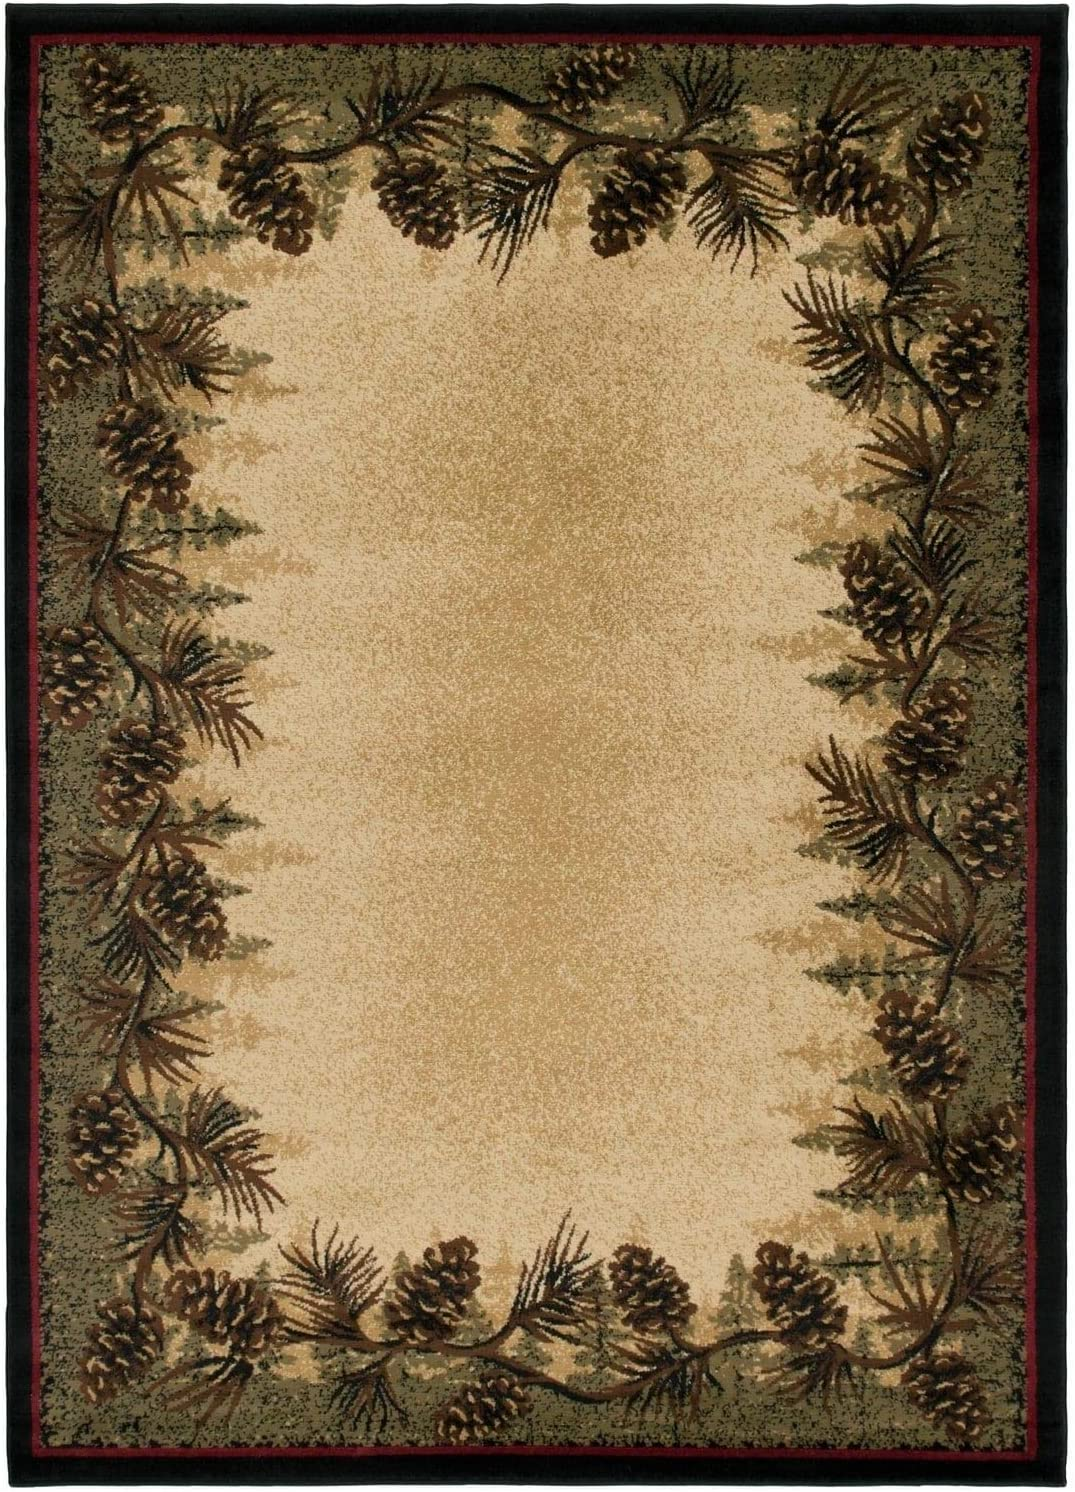 """Rustic Lodge Cabin Pine Cone Area Rug - Multi 3'11"""" X 5'3"""" Nature Novelty Rectangle Polypropylene Contains Latex Stain Resistant"""